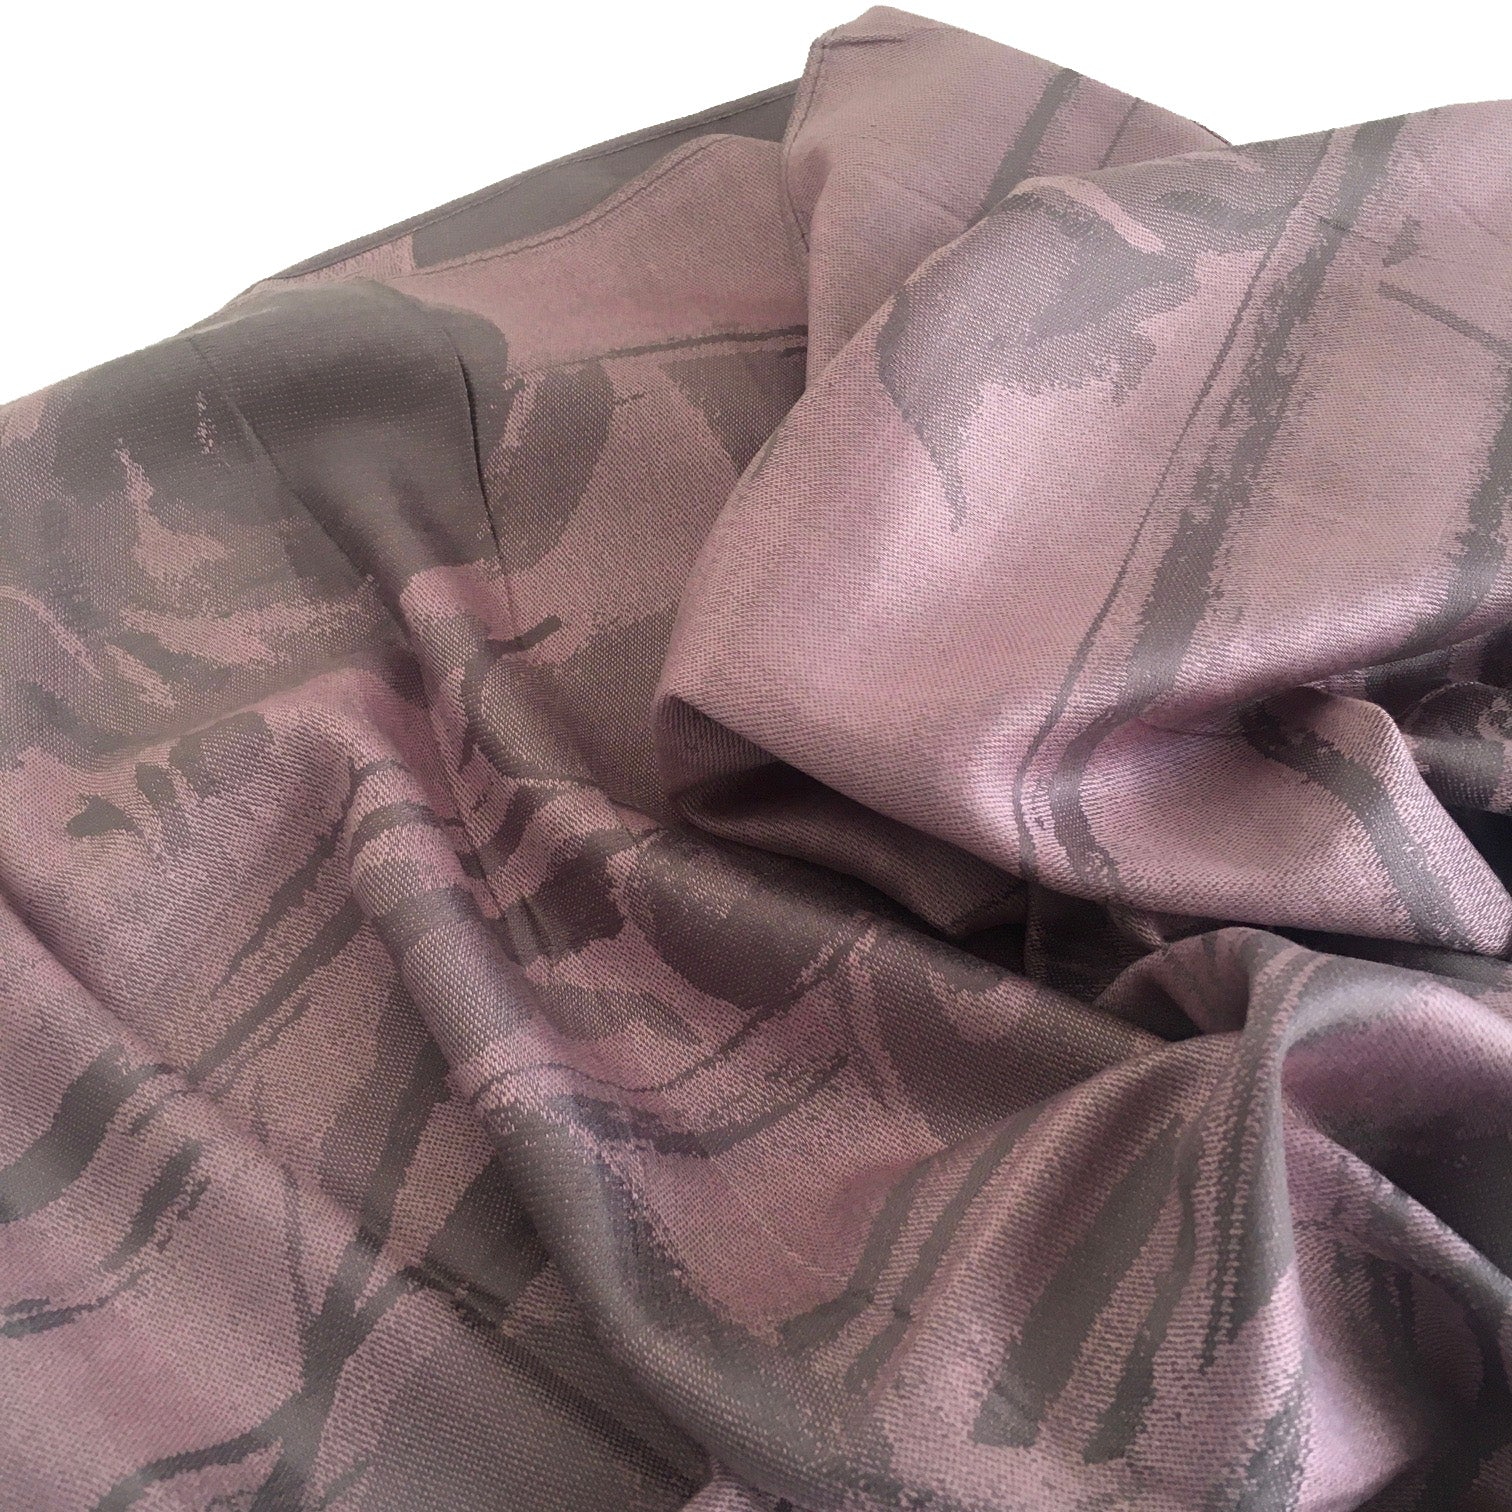 A-SHU BLUSH PINK GREY REVERSIBLE PASHMINA SHAWL SCARF IN ABSTRACT FLORAL PRINT - A-SHU.CO.UK